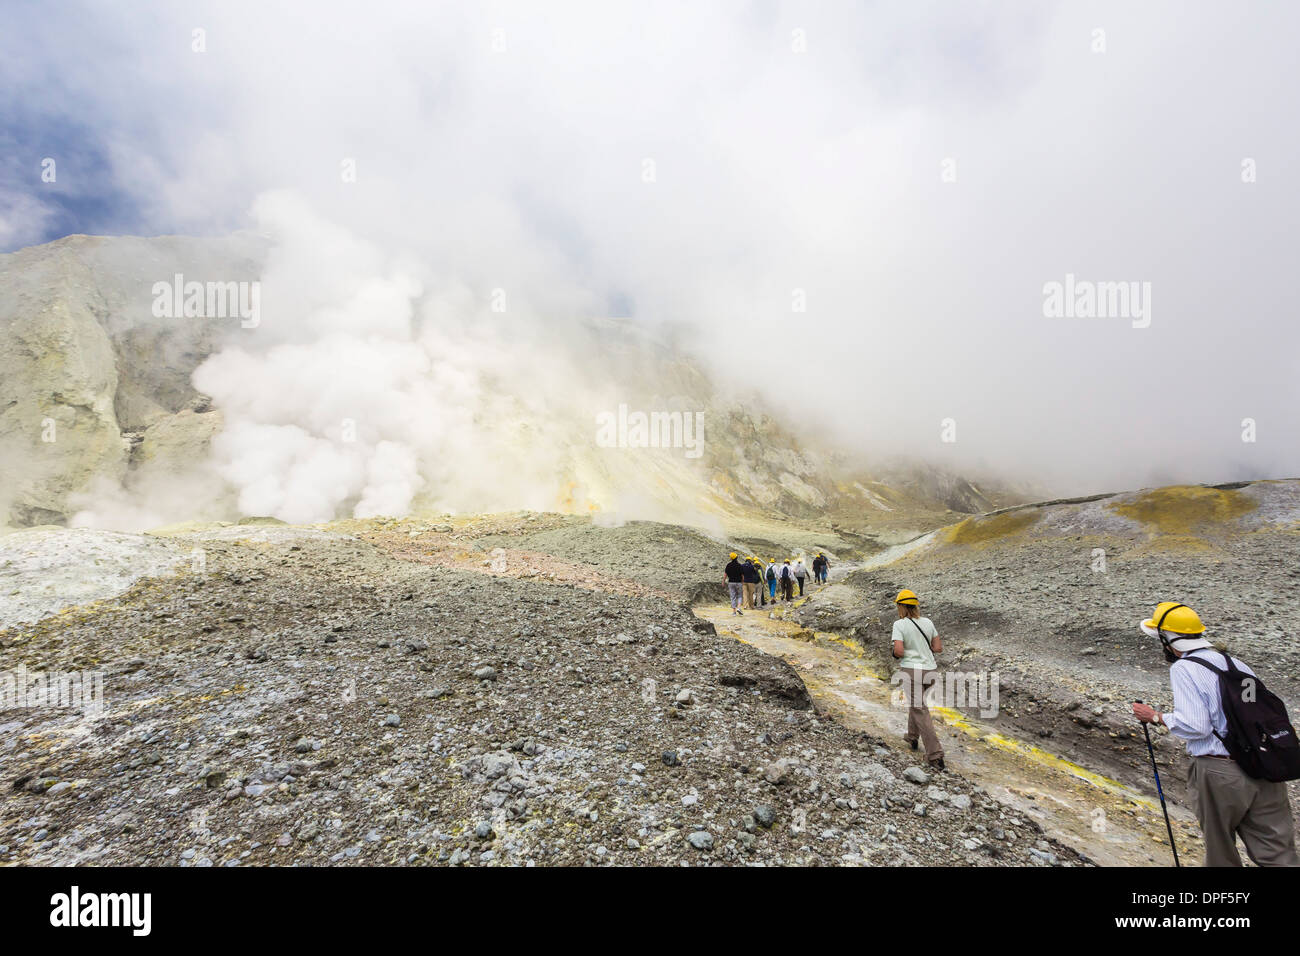 Visitors at an active andesite stratovolcano on White Island, North Island, New Zealand - Stock Image